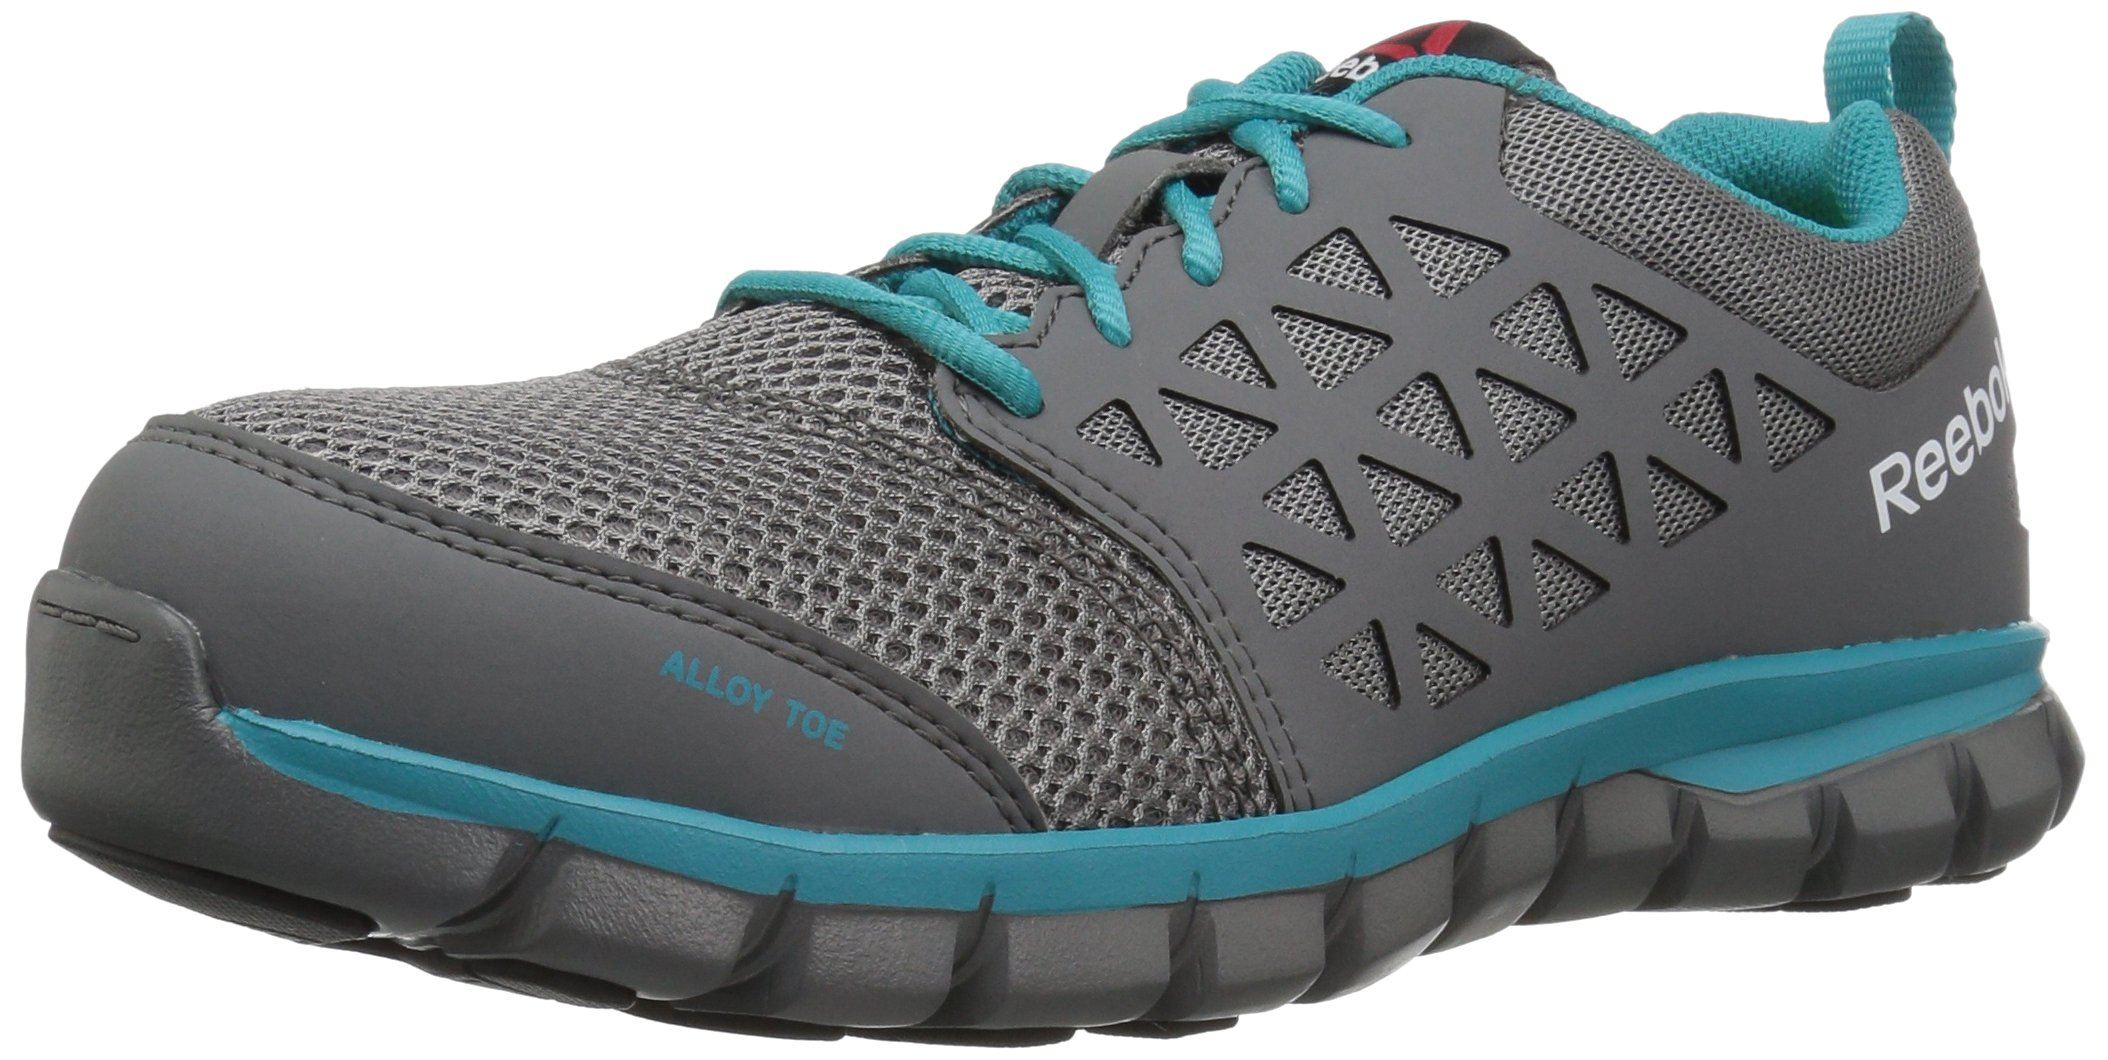 Reebok Women's Sublite Cushion RB045 Work Boot, Grey Turquoise, 7 M US